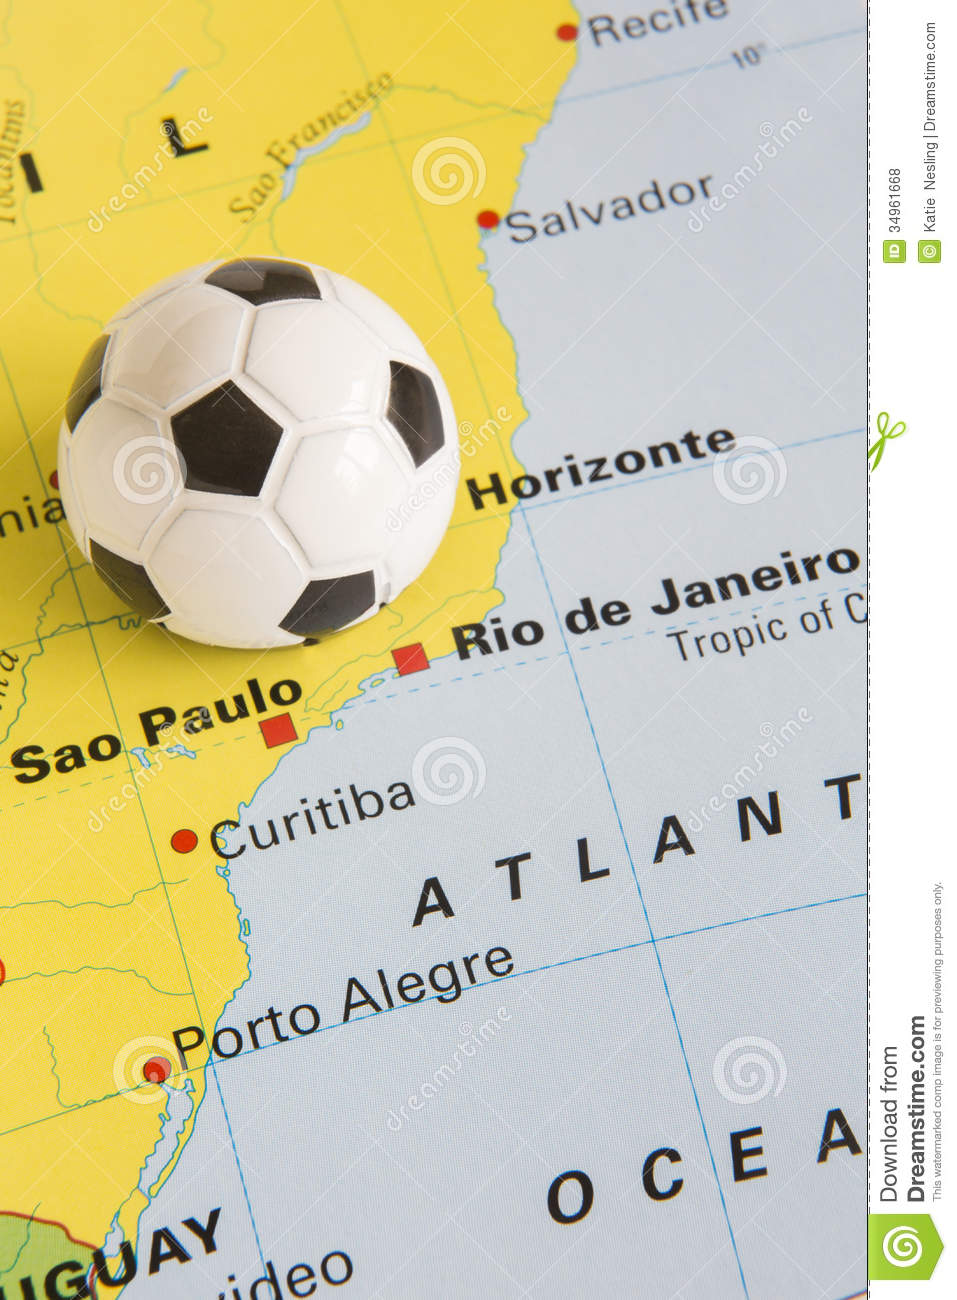 Football on map of brazil to show 2014 rio fifa world cup tourna football on map of brazil to show 2014 rio fifa world cup tourna gumiabroncs Gallery